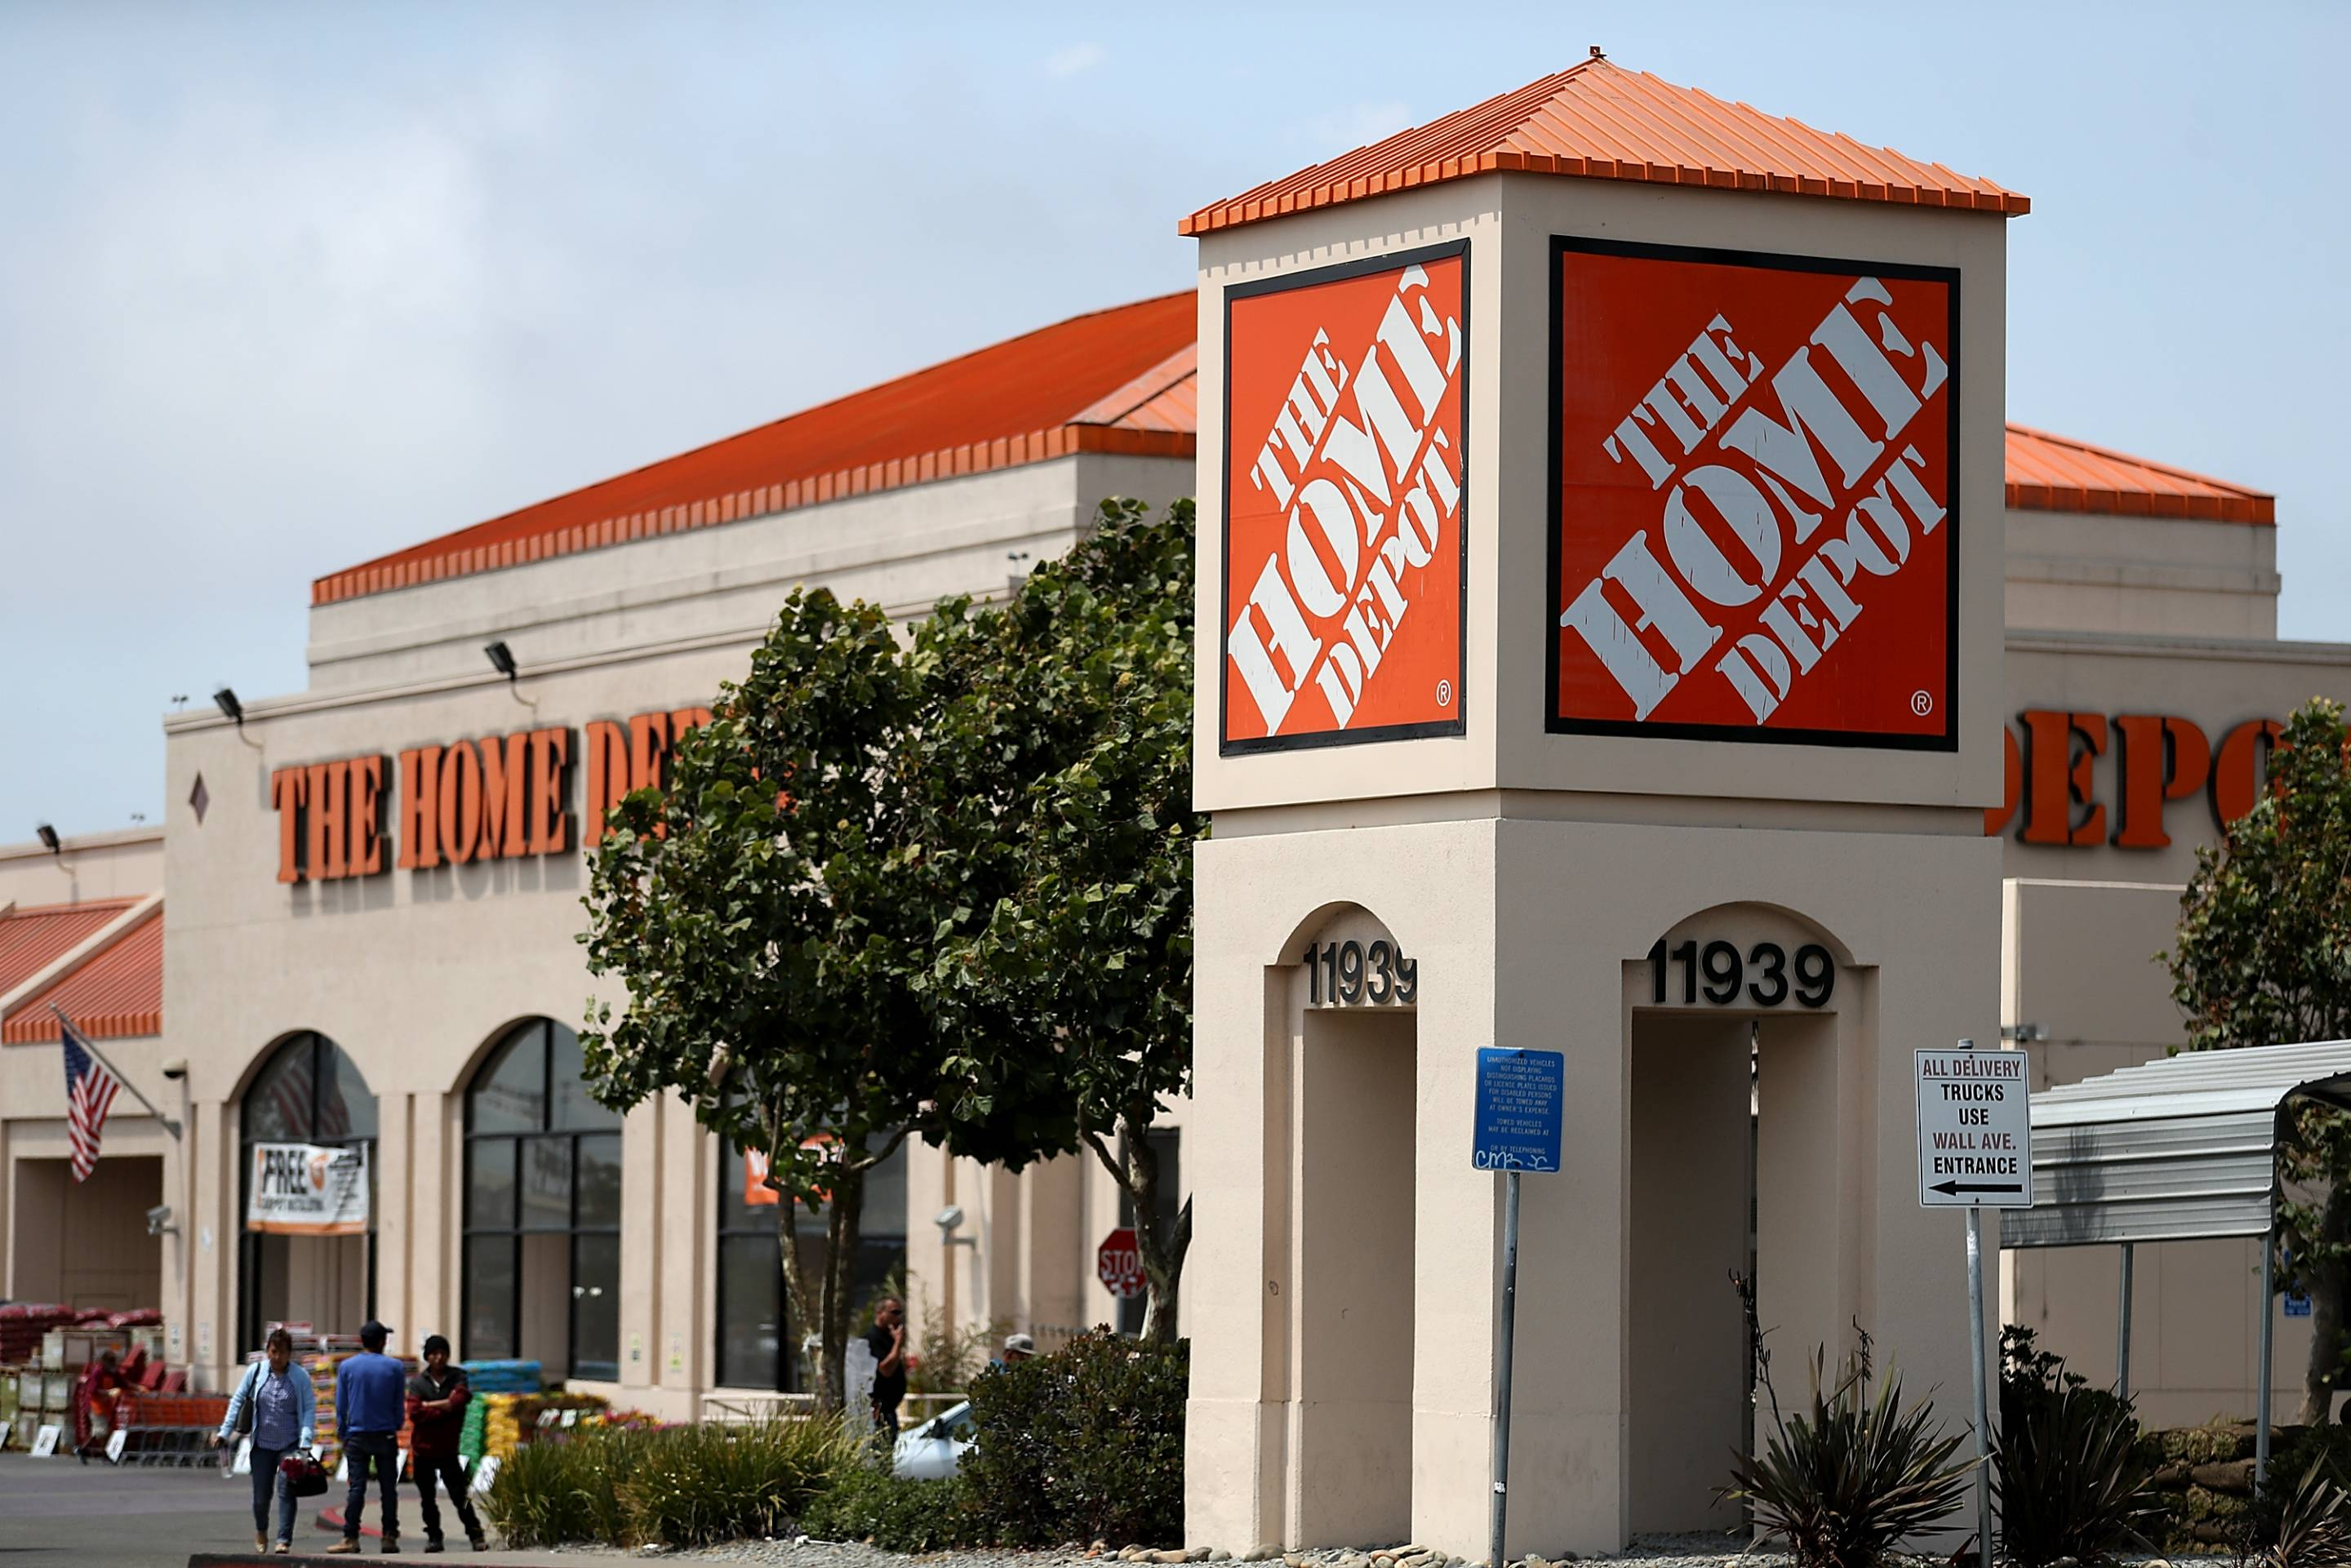 Home Depot hiring 80,000 spring seasonal workers